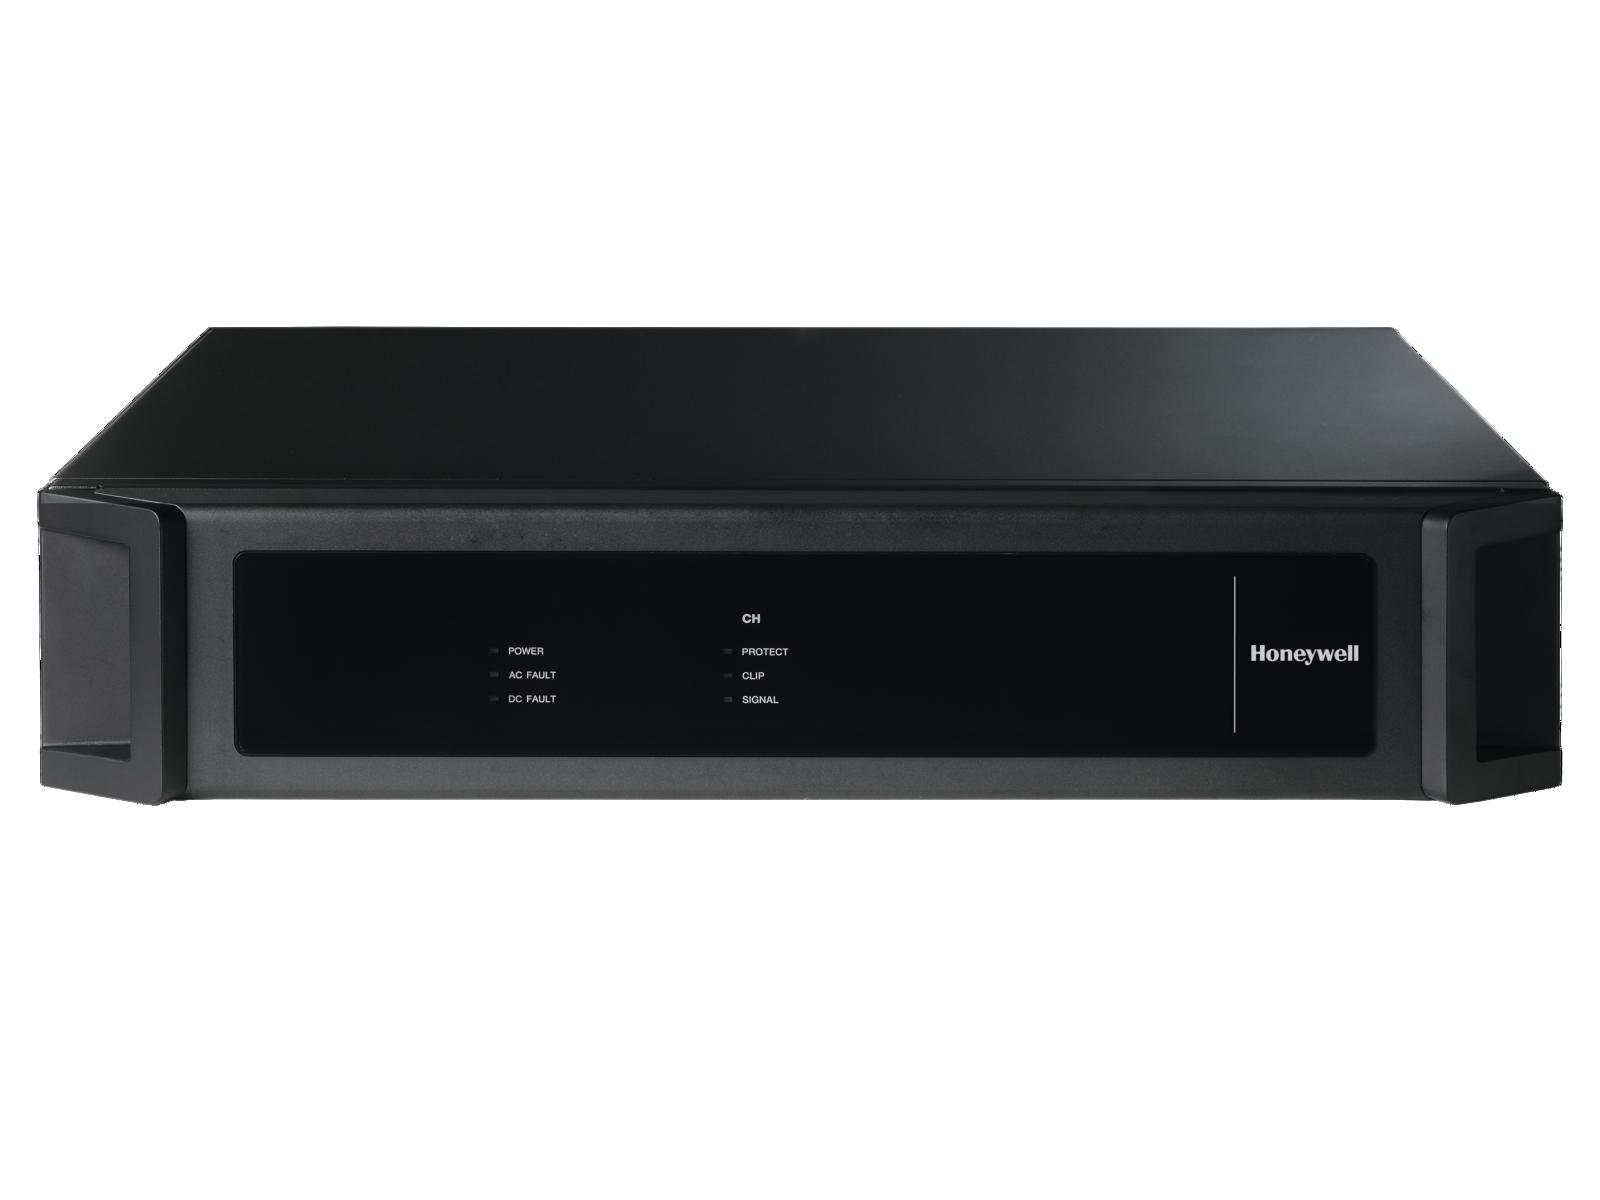 HONEYWELL X-DA1500EN 100V/70V amplificatore audio di Classe D